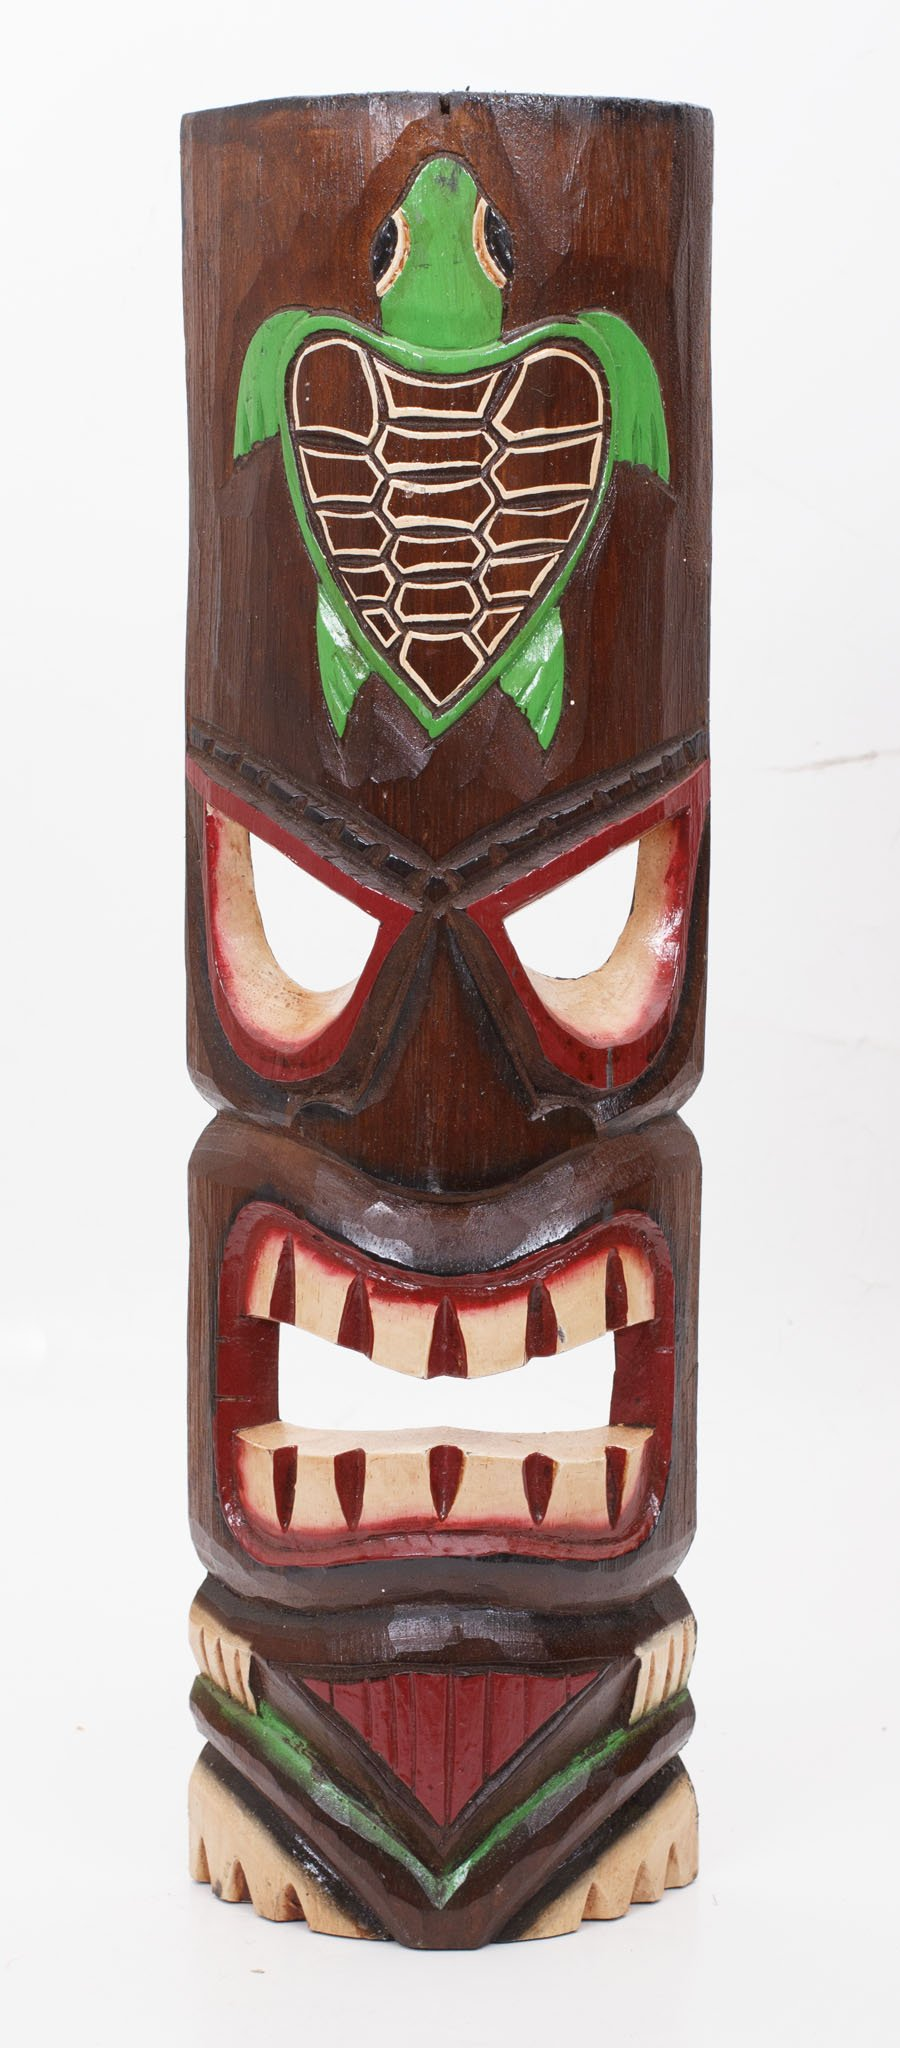 More Tiki CJ27DP-0313